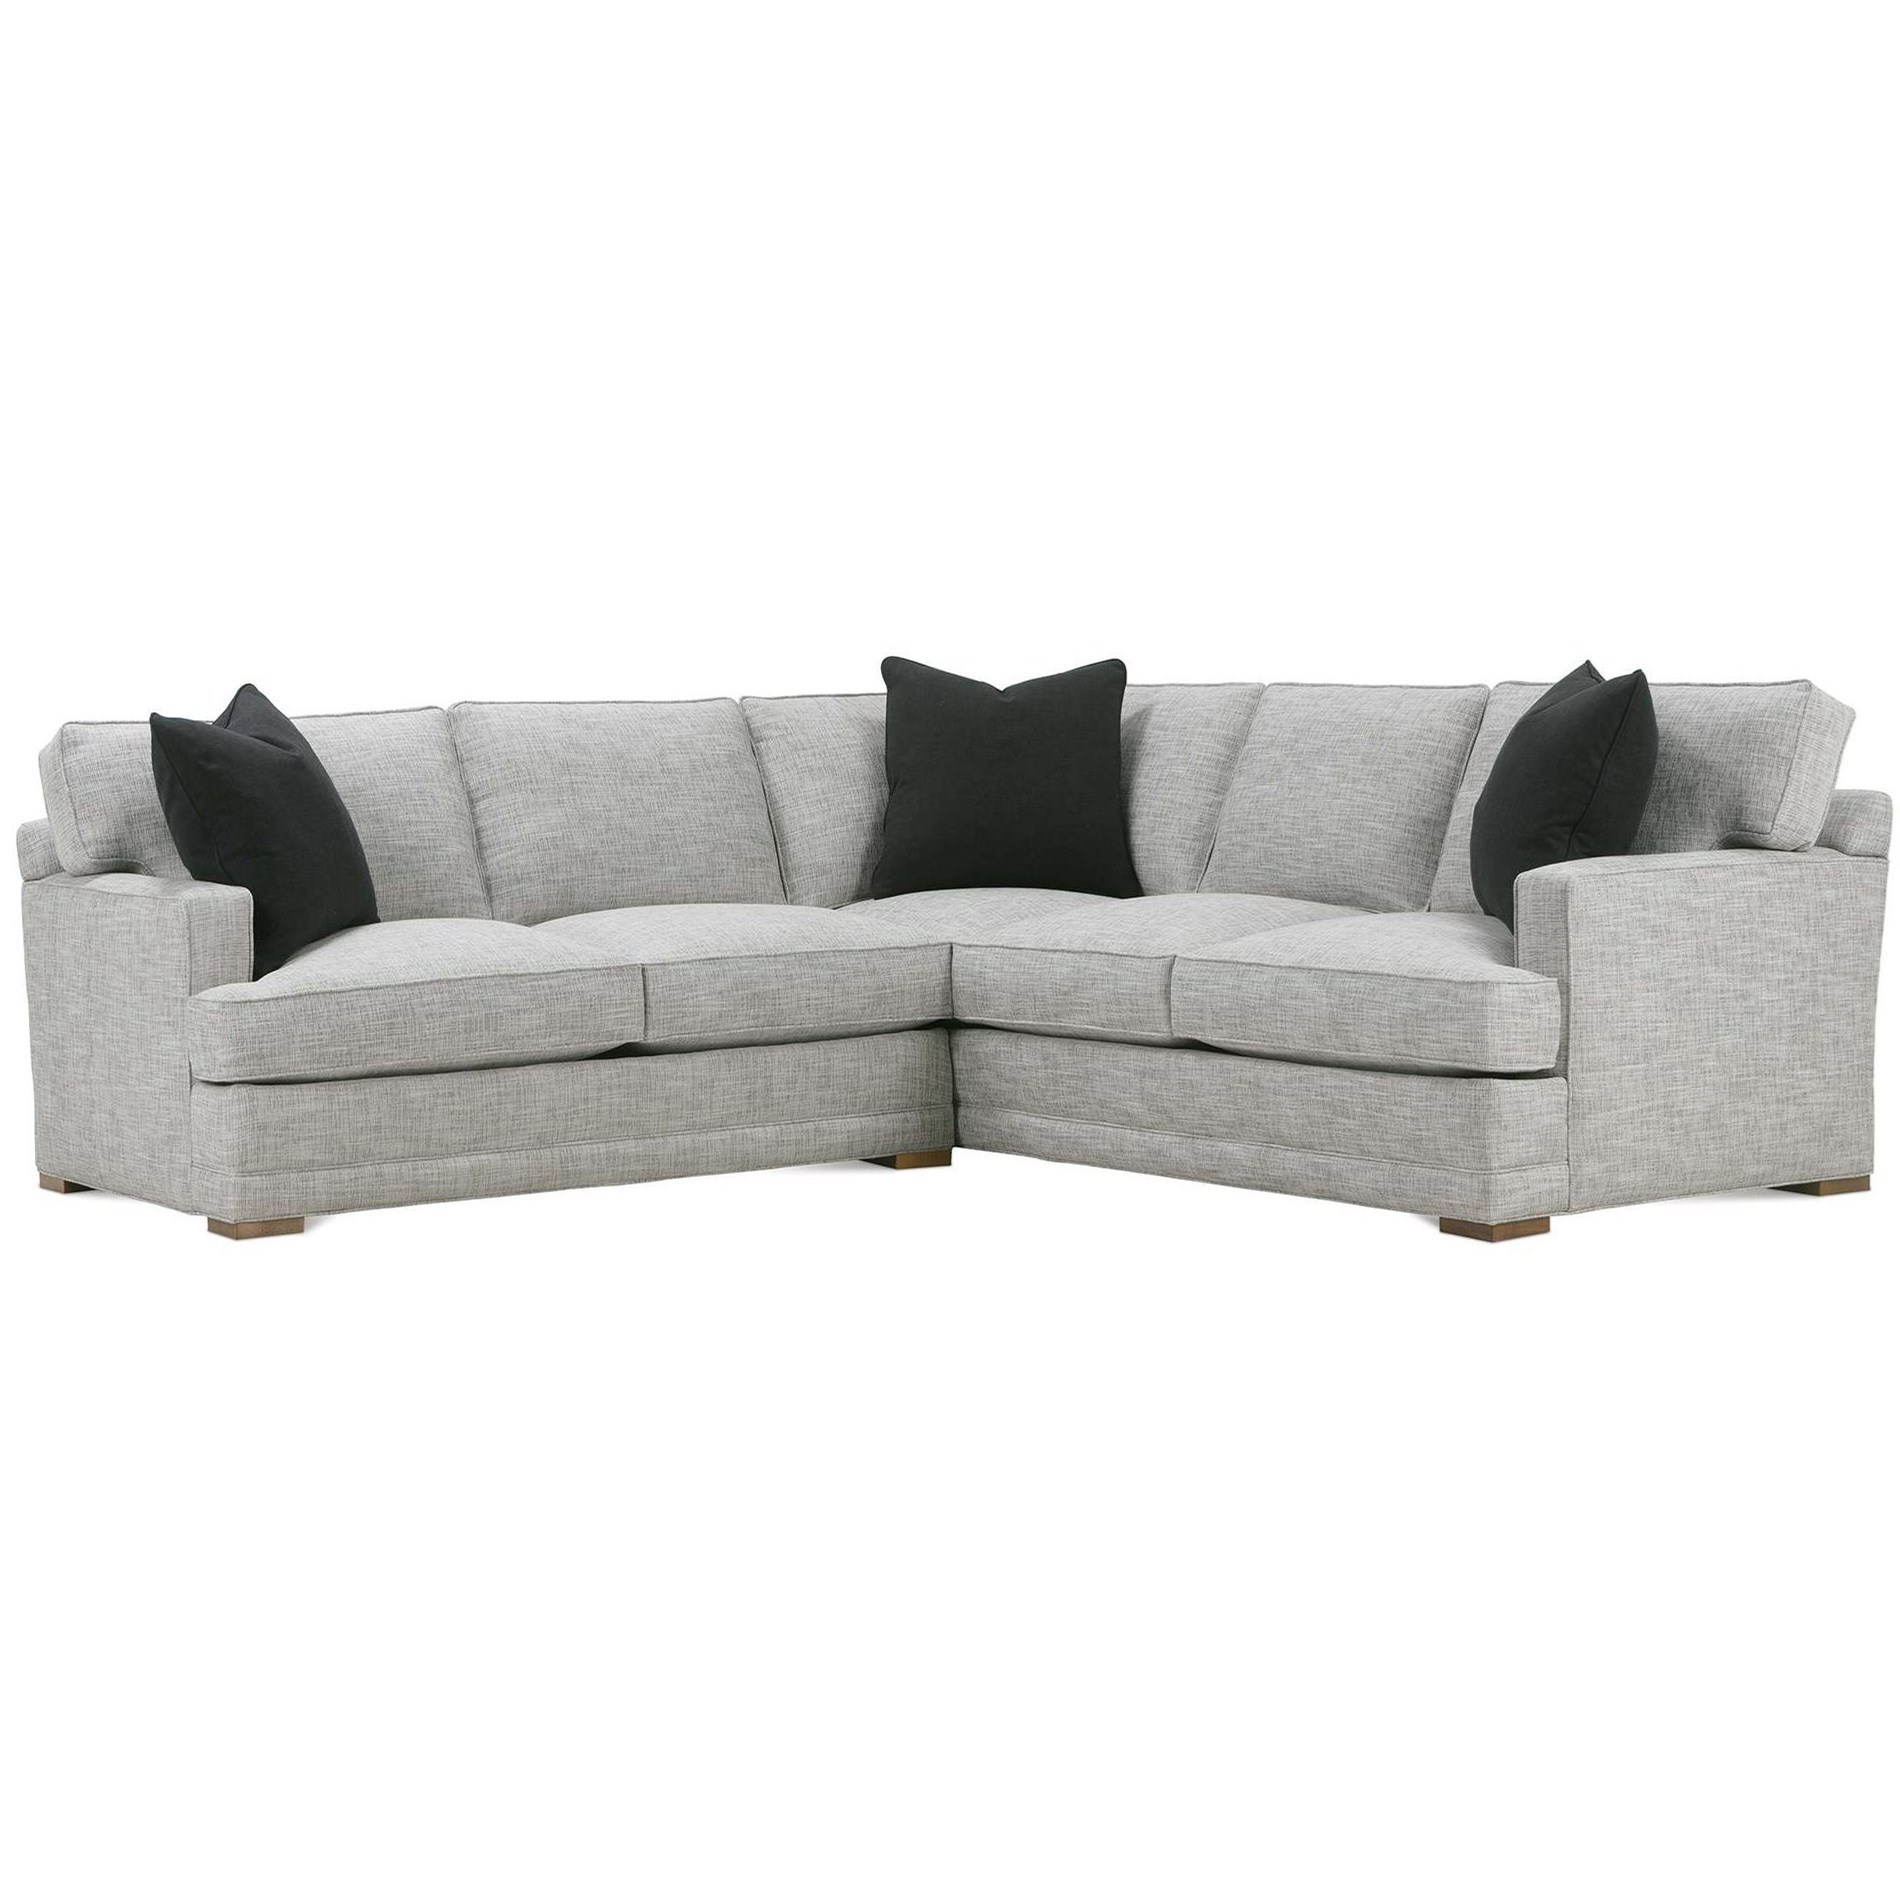 2 piece sectional with rse corner sofa